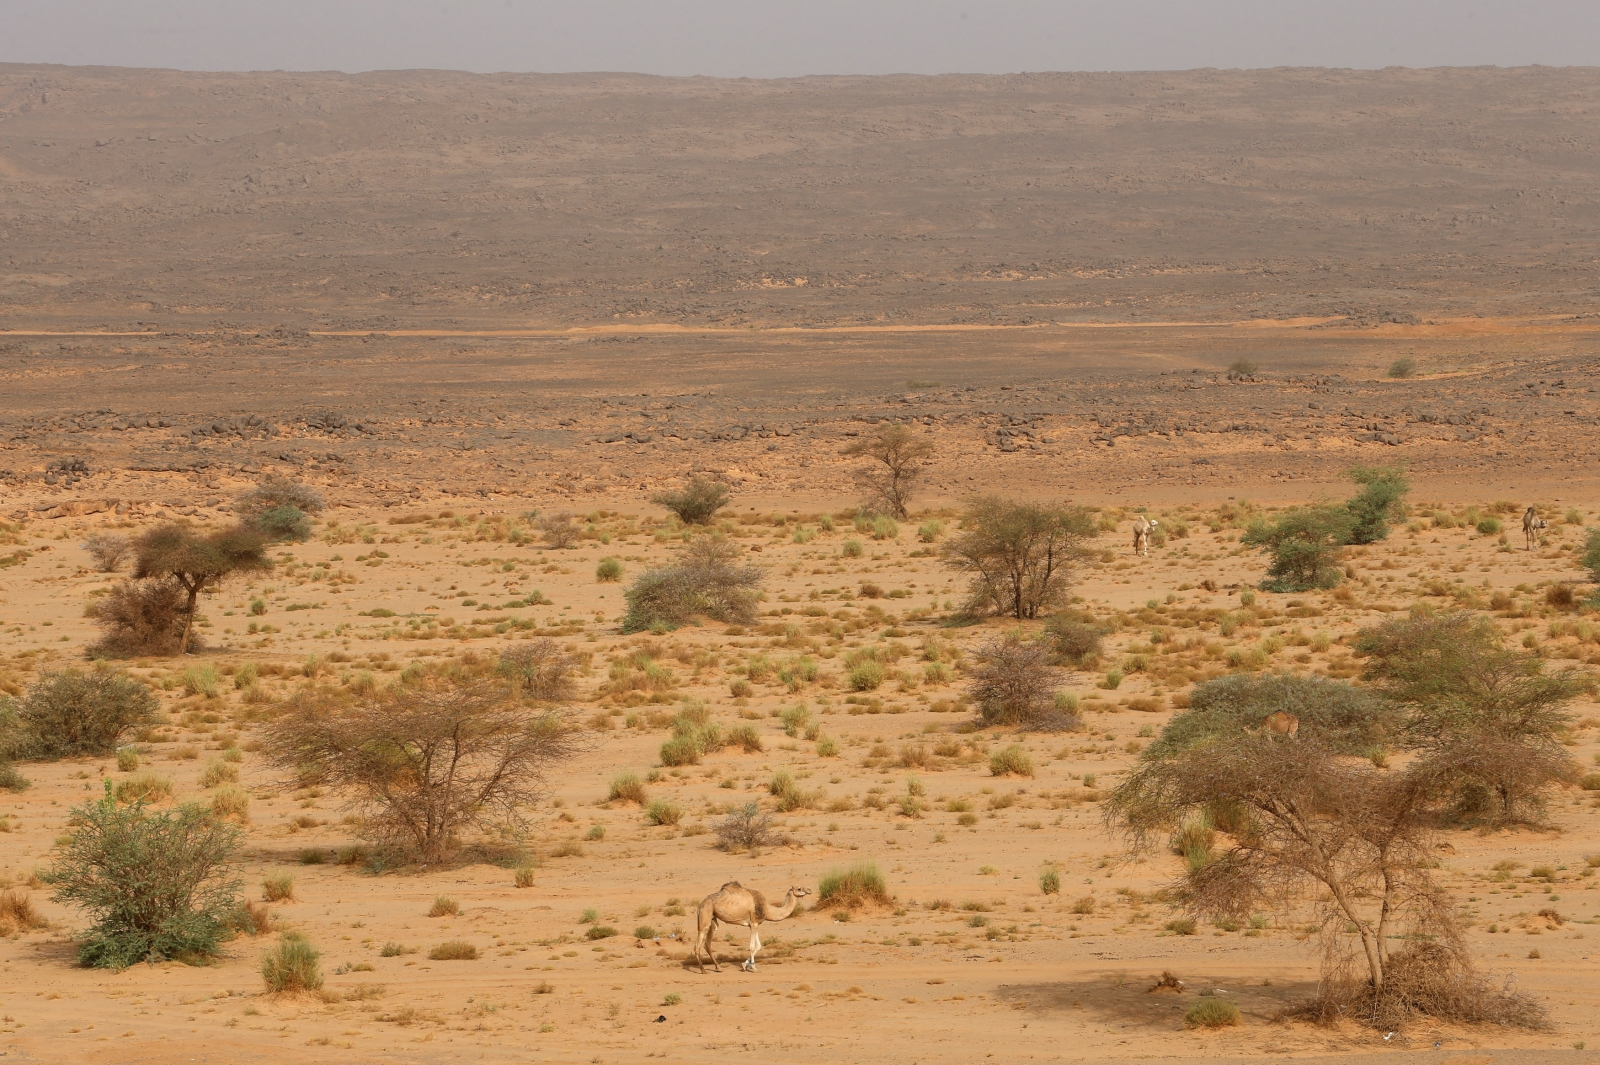 Niger migrants found dead in desert